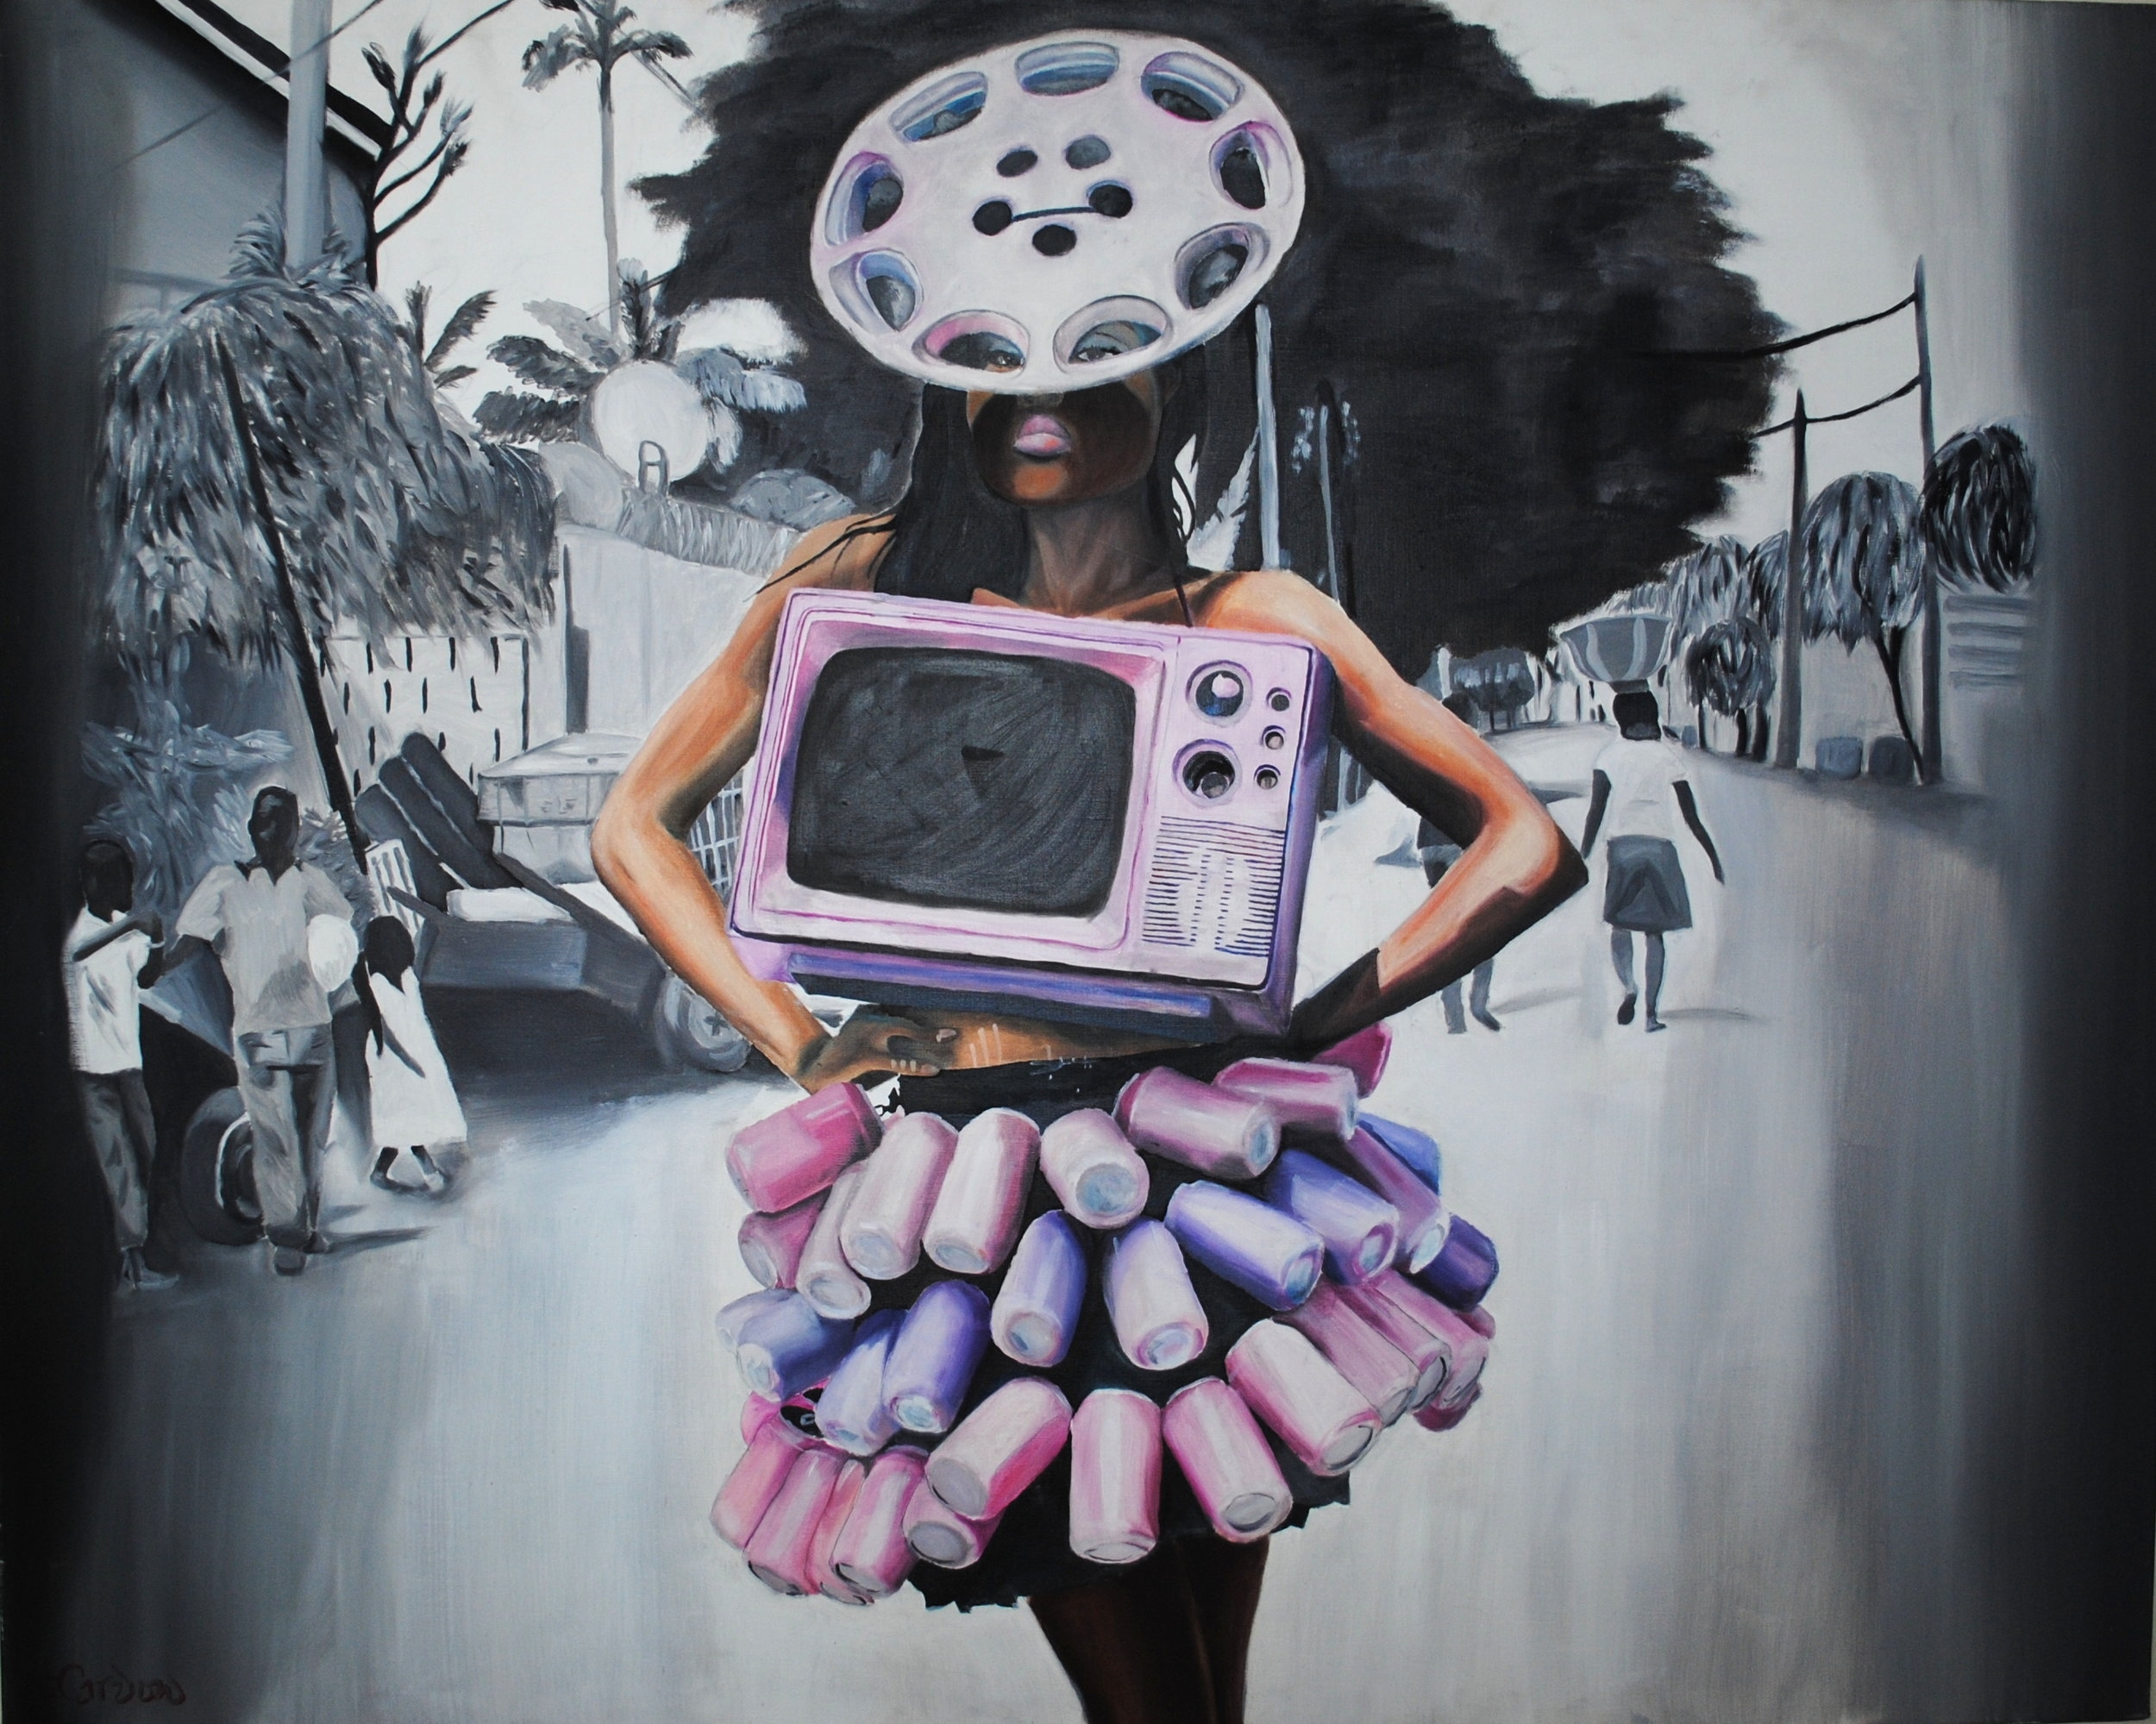 Recycle (2012)